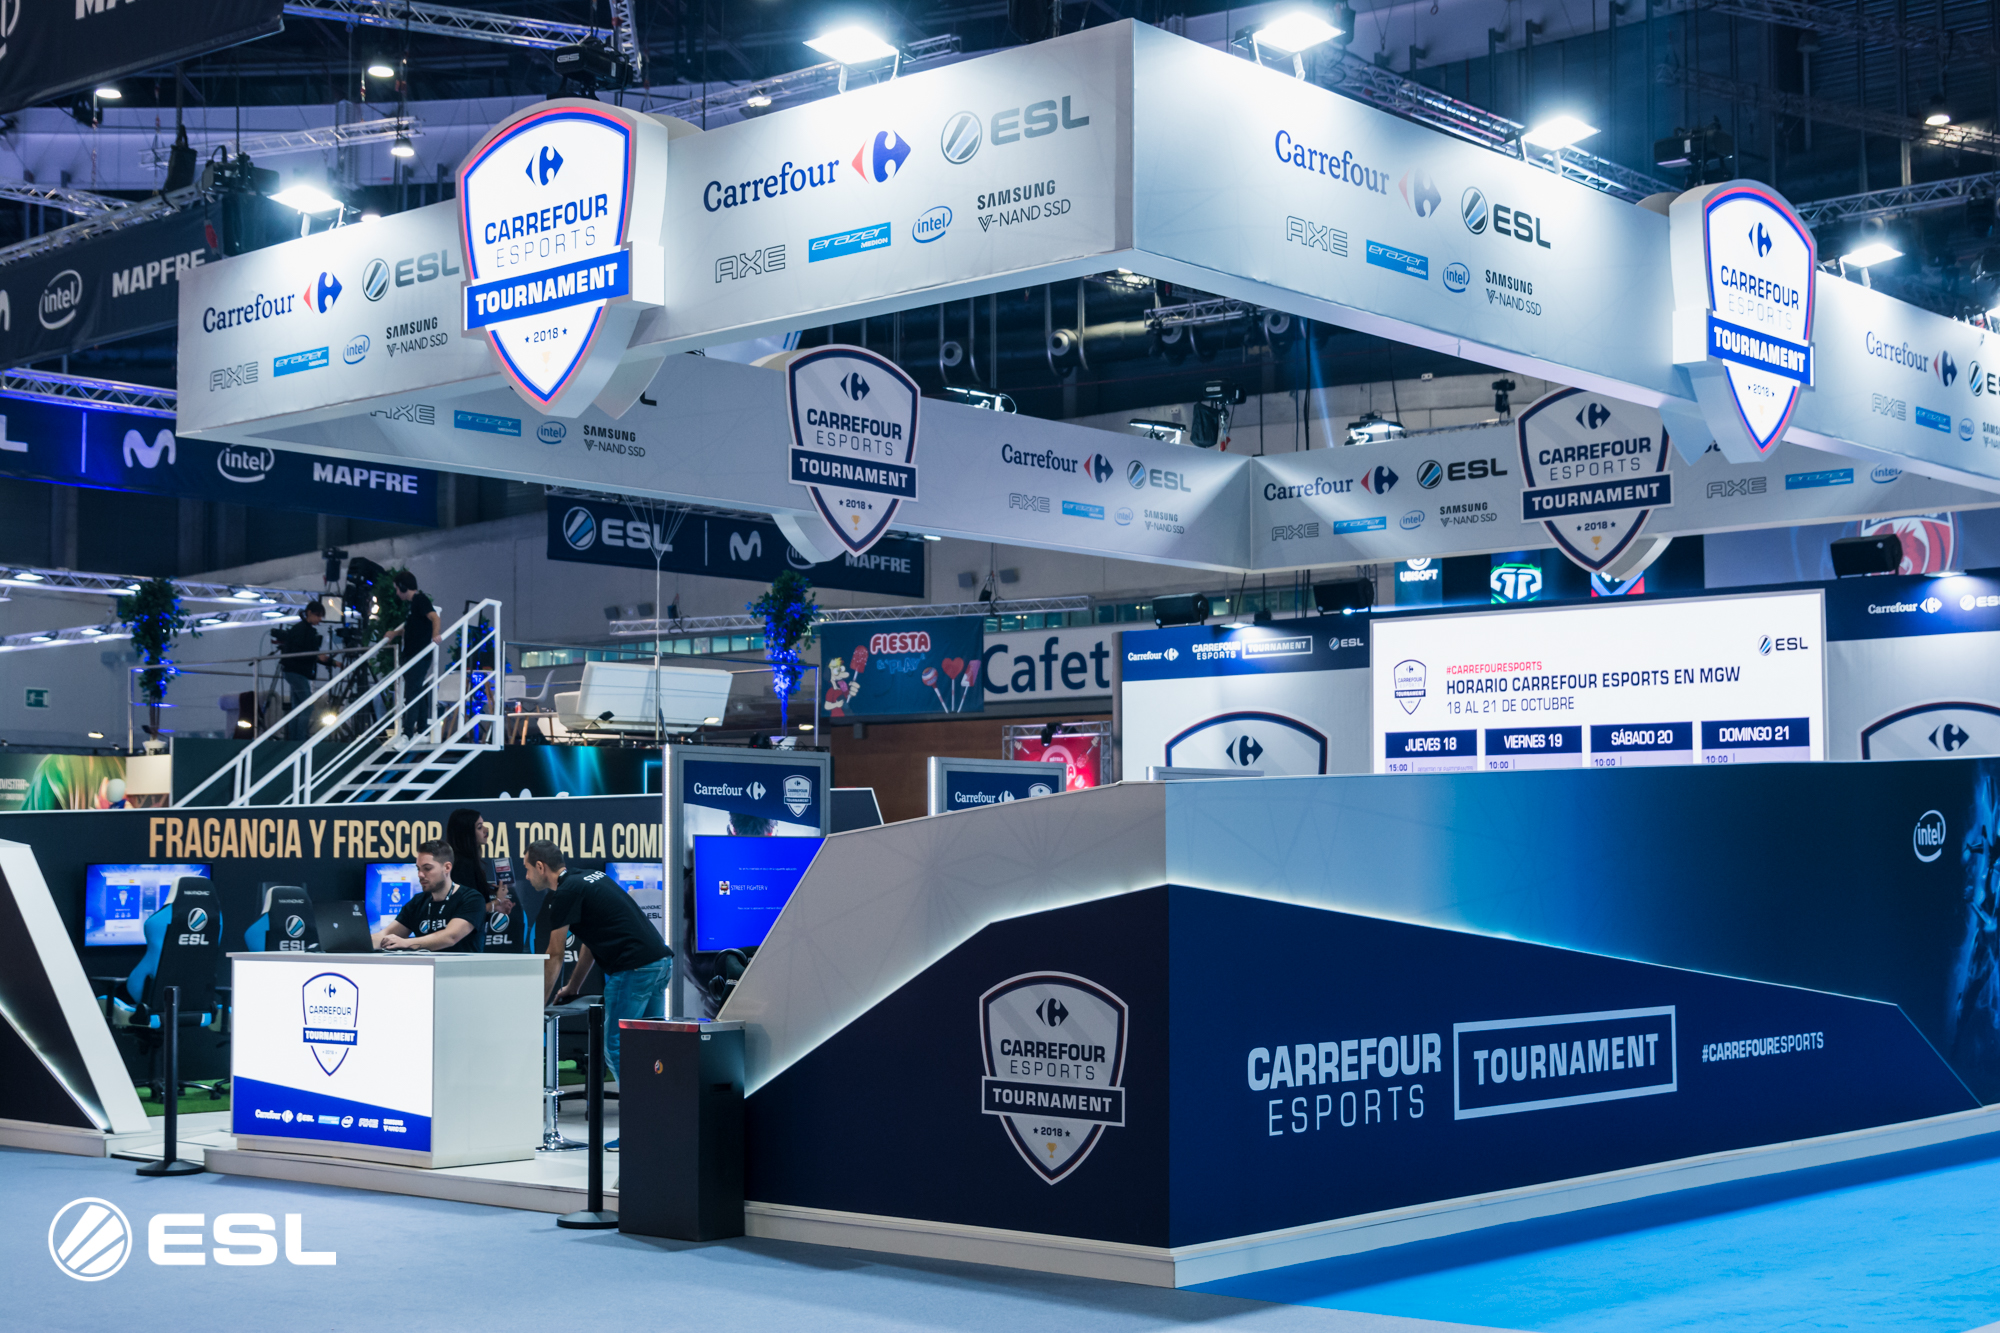 Carrefour eSports Tournament estrena temporada con FIFA19 y Assetto Corsa